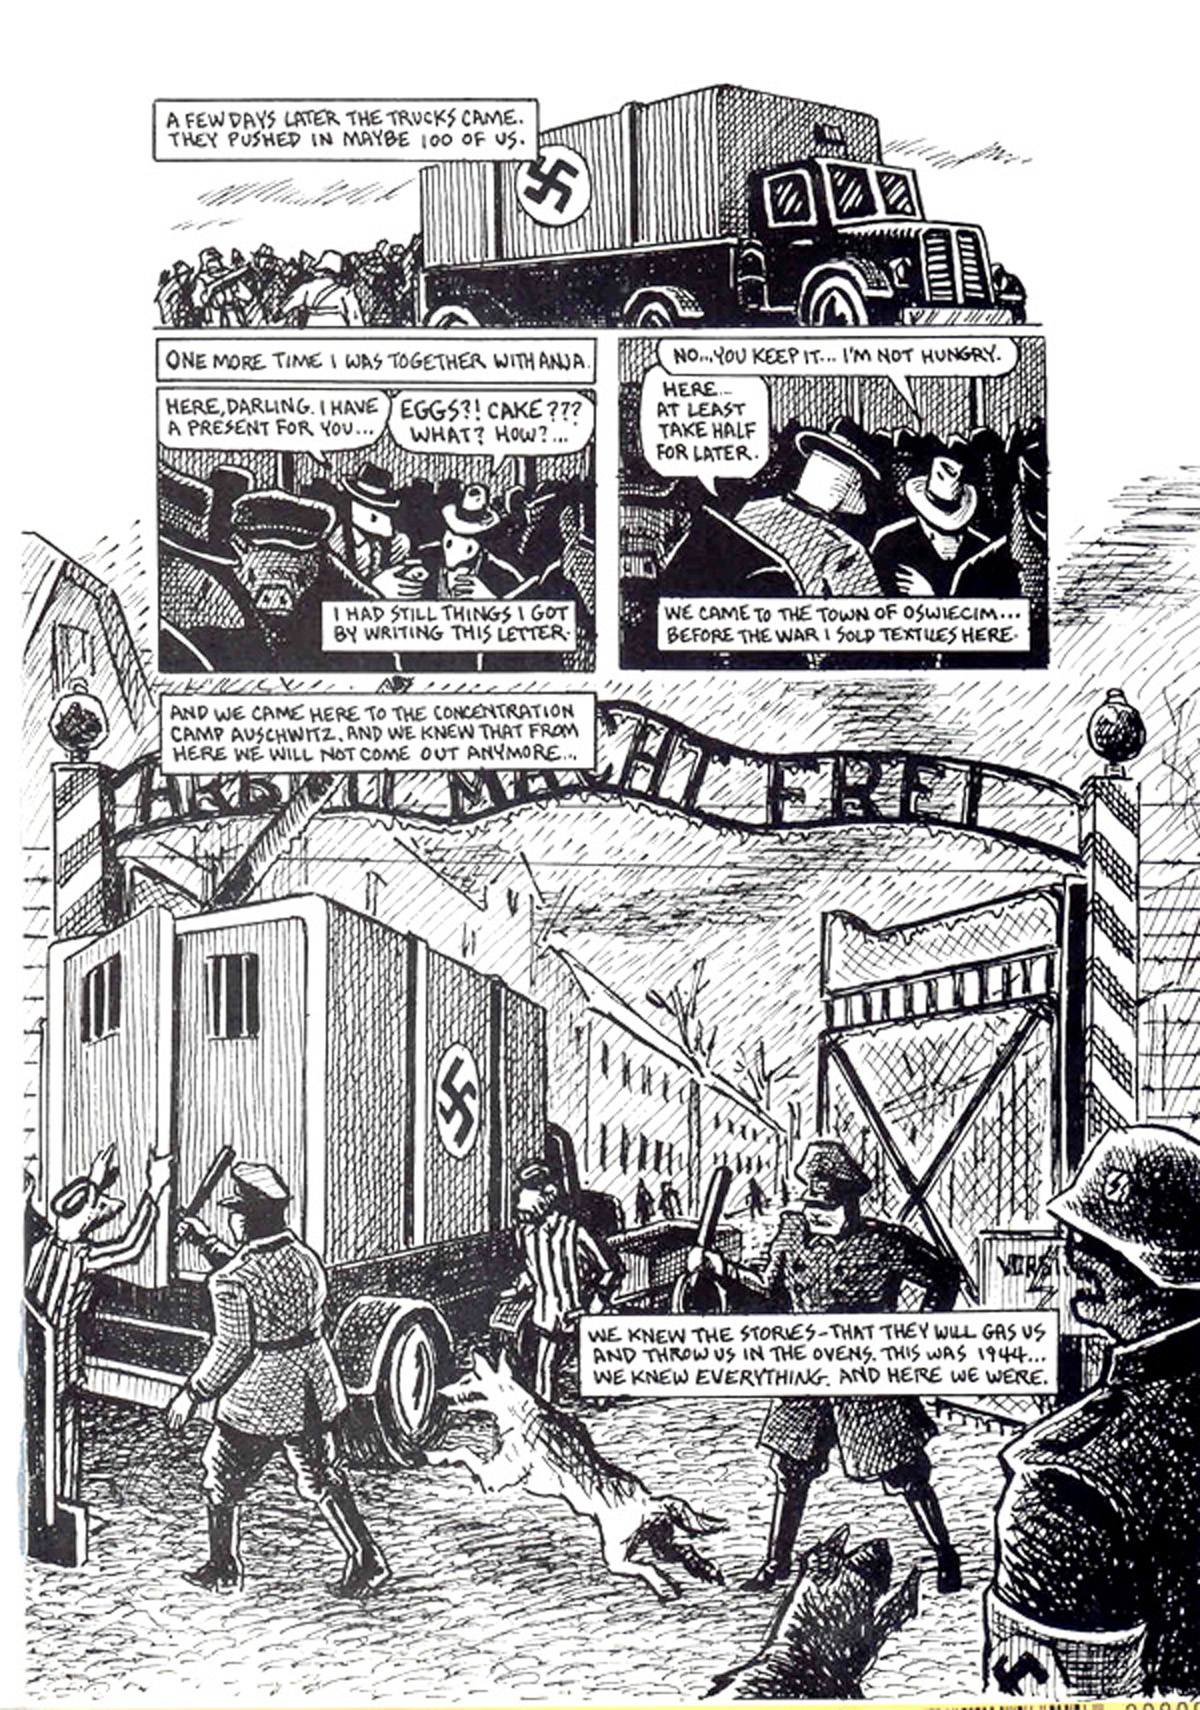 Auschwitz, pg. 157 from Maus, A Survivor's Tale, Volume One by Art Spiegelman published by Pantheon Books, New York 1992